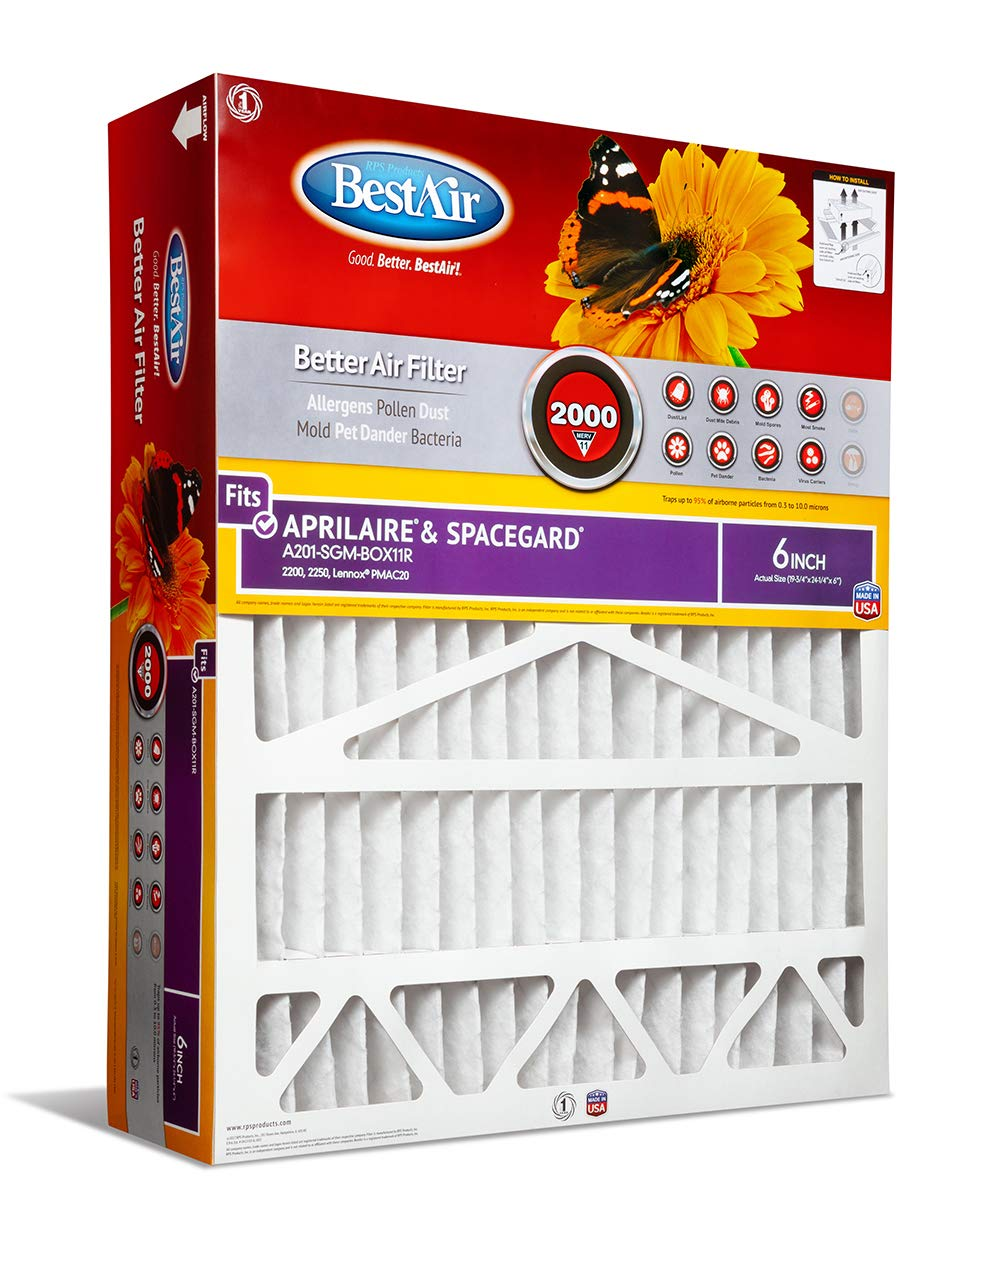 BestAir A201-SGM-BOX11R Air Cleaning Furnace Filter with Cardboard Frame, MERV 11, For Aprilaire/SpaceGard 2200, 2250 (201) & Lennox PMAC-20C 24'', 20'' x 25'' x 6'', 2 Pack